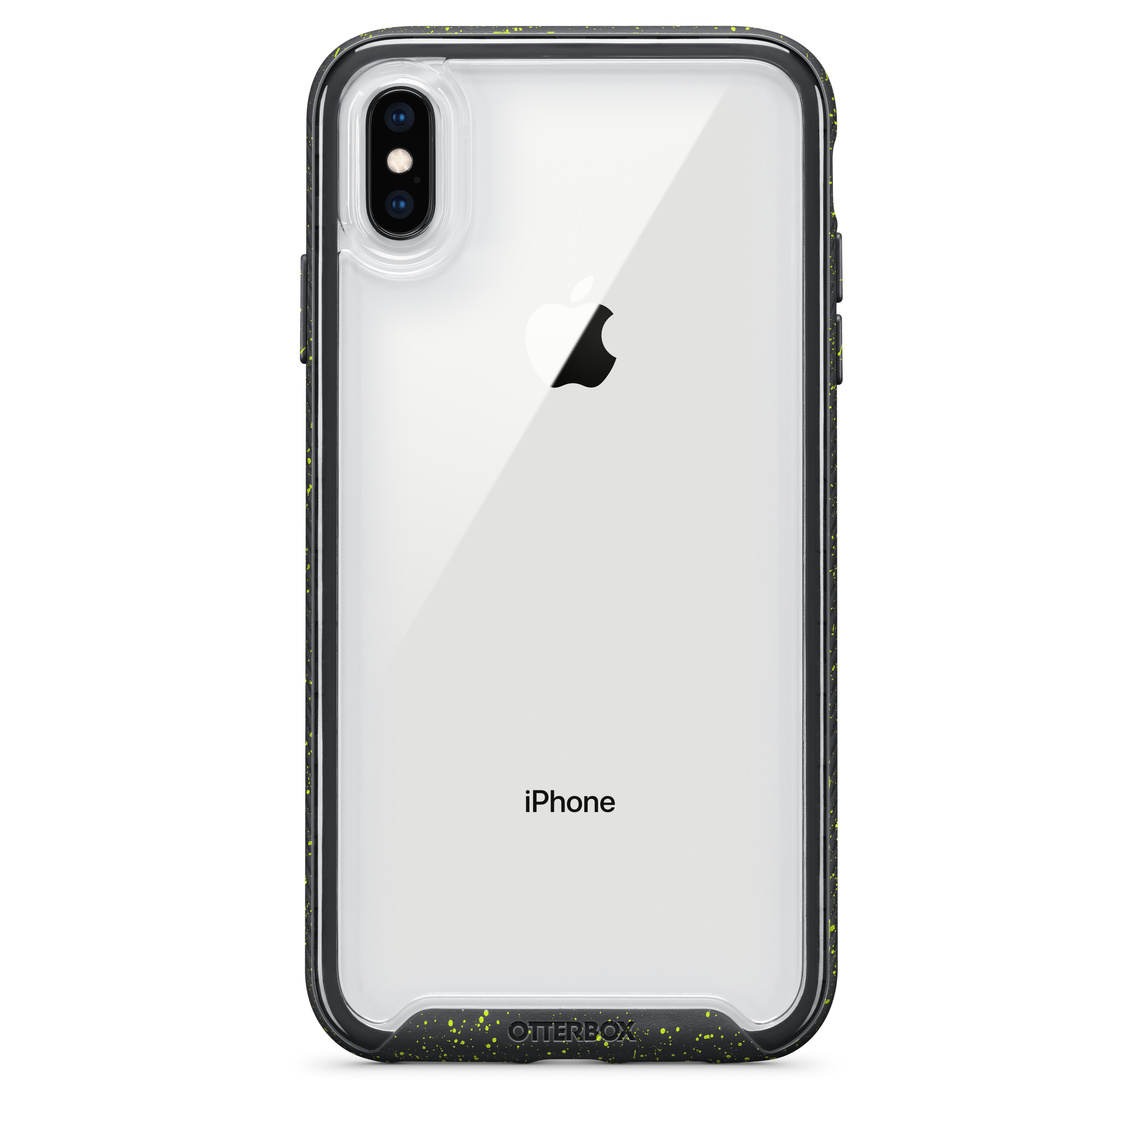 new arrival c9c0e c8bdd OtterBox Traction Series Case for iPhone XS Max - Night Glow